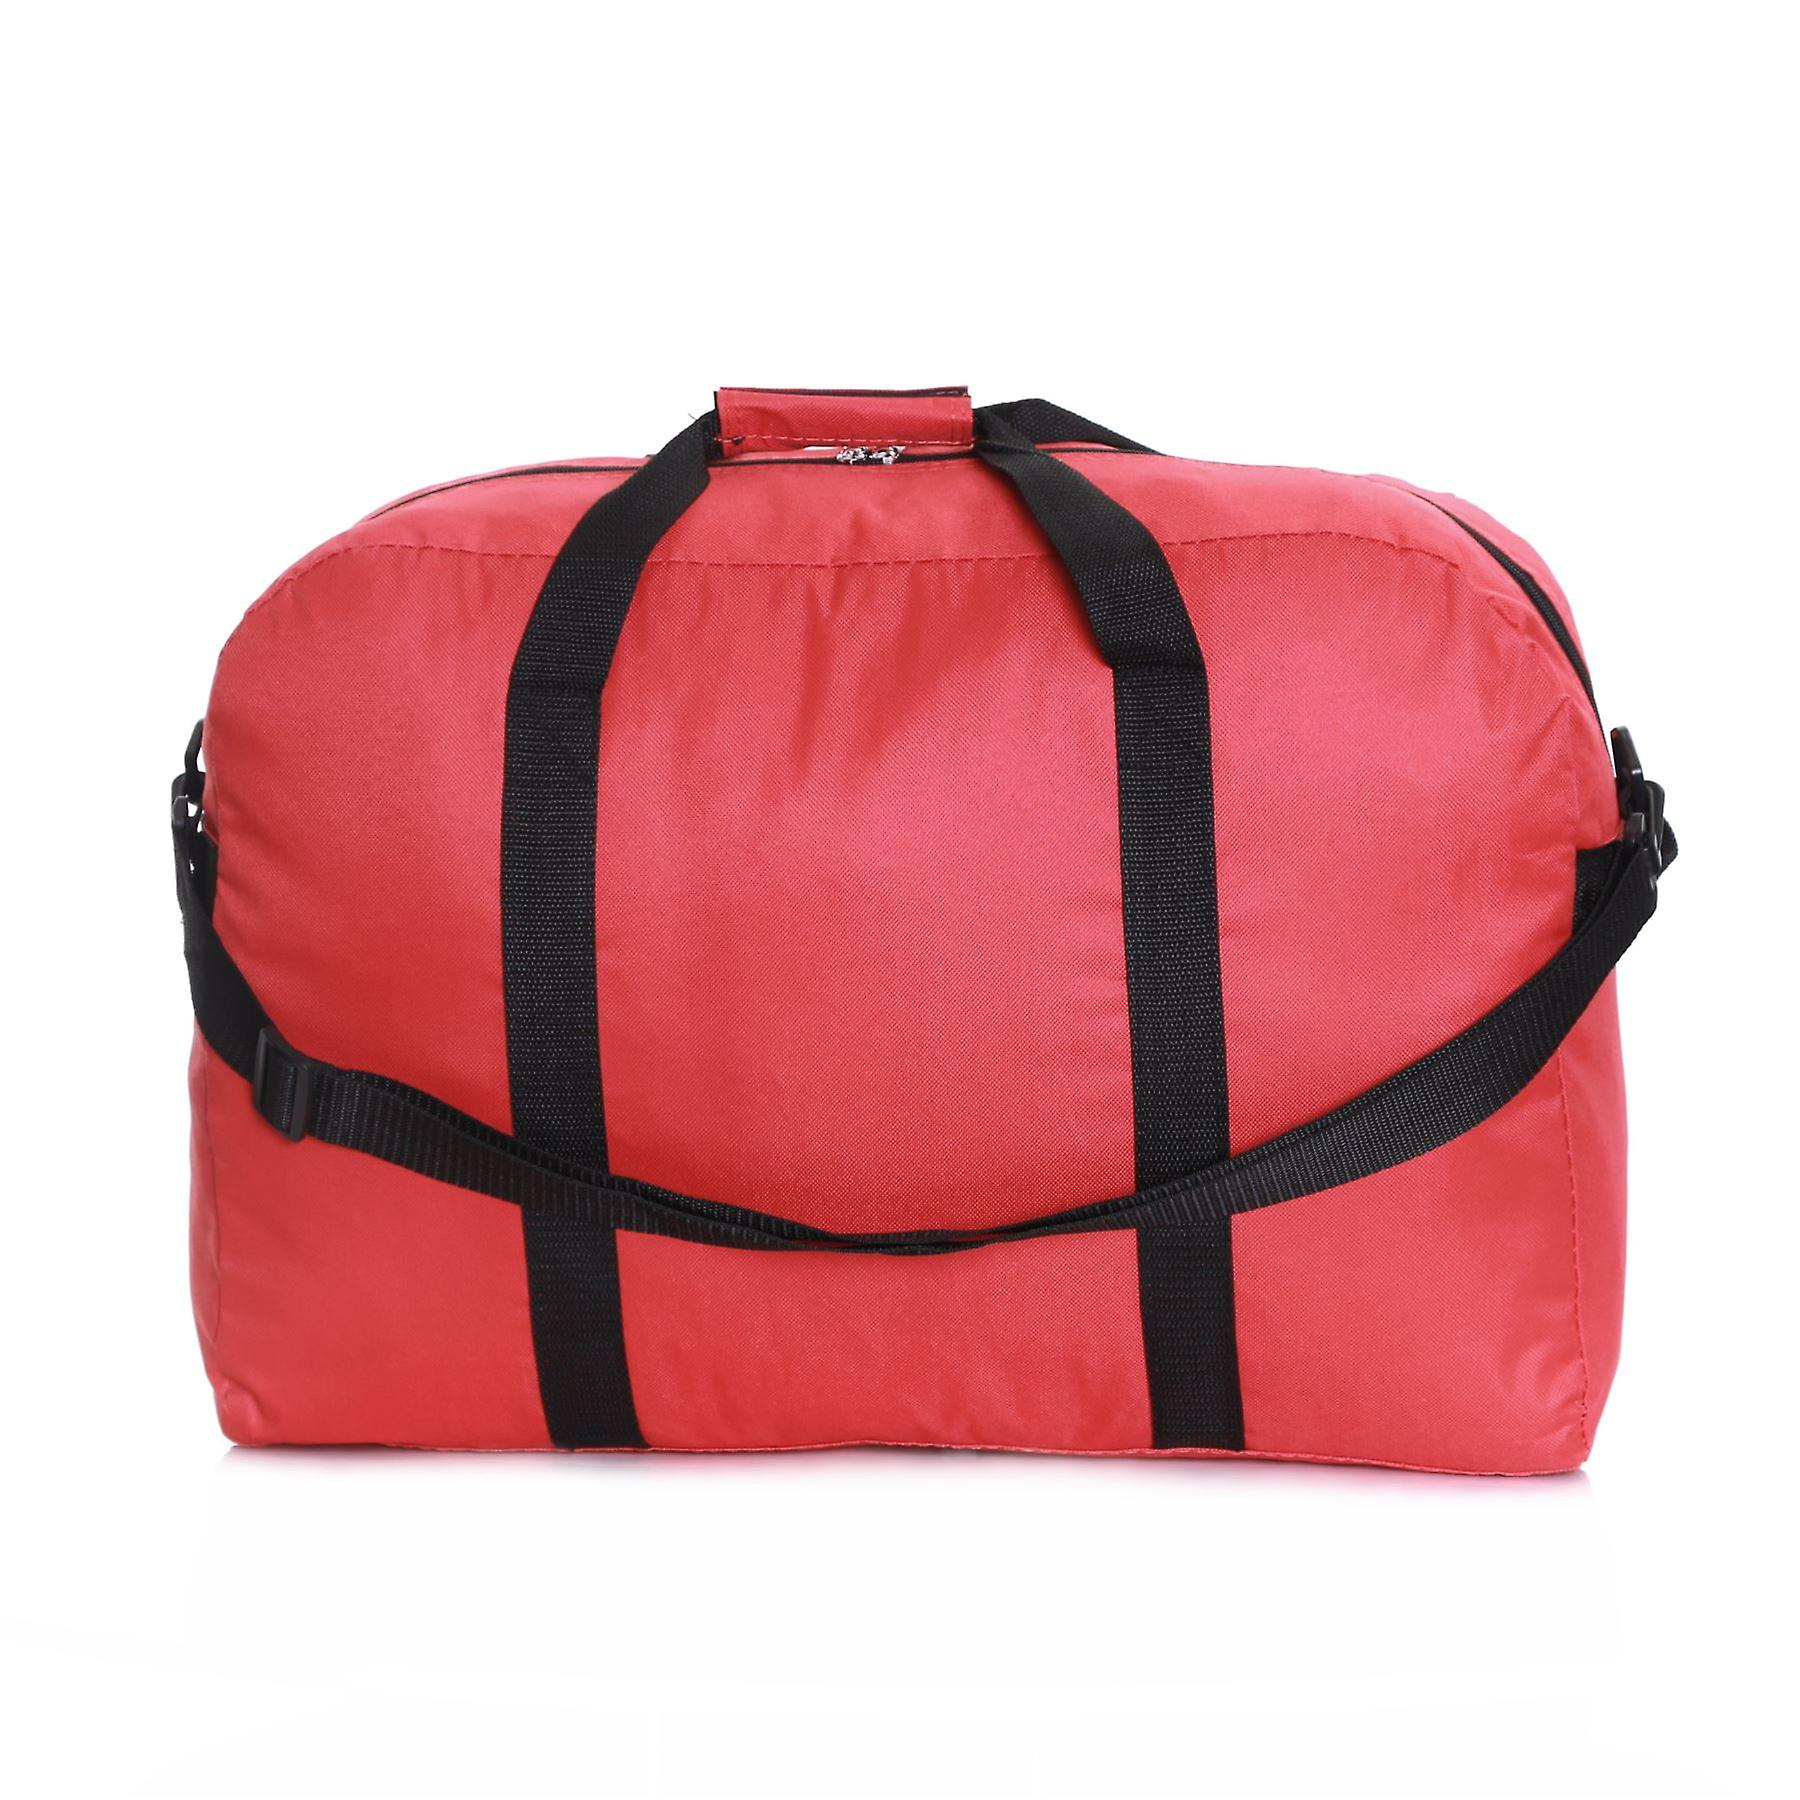 Slimbridge Ryanair Set of 2 Cabin Bags, Red 55 x 40 x 20 cm and 35 x 20 x 20 cm